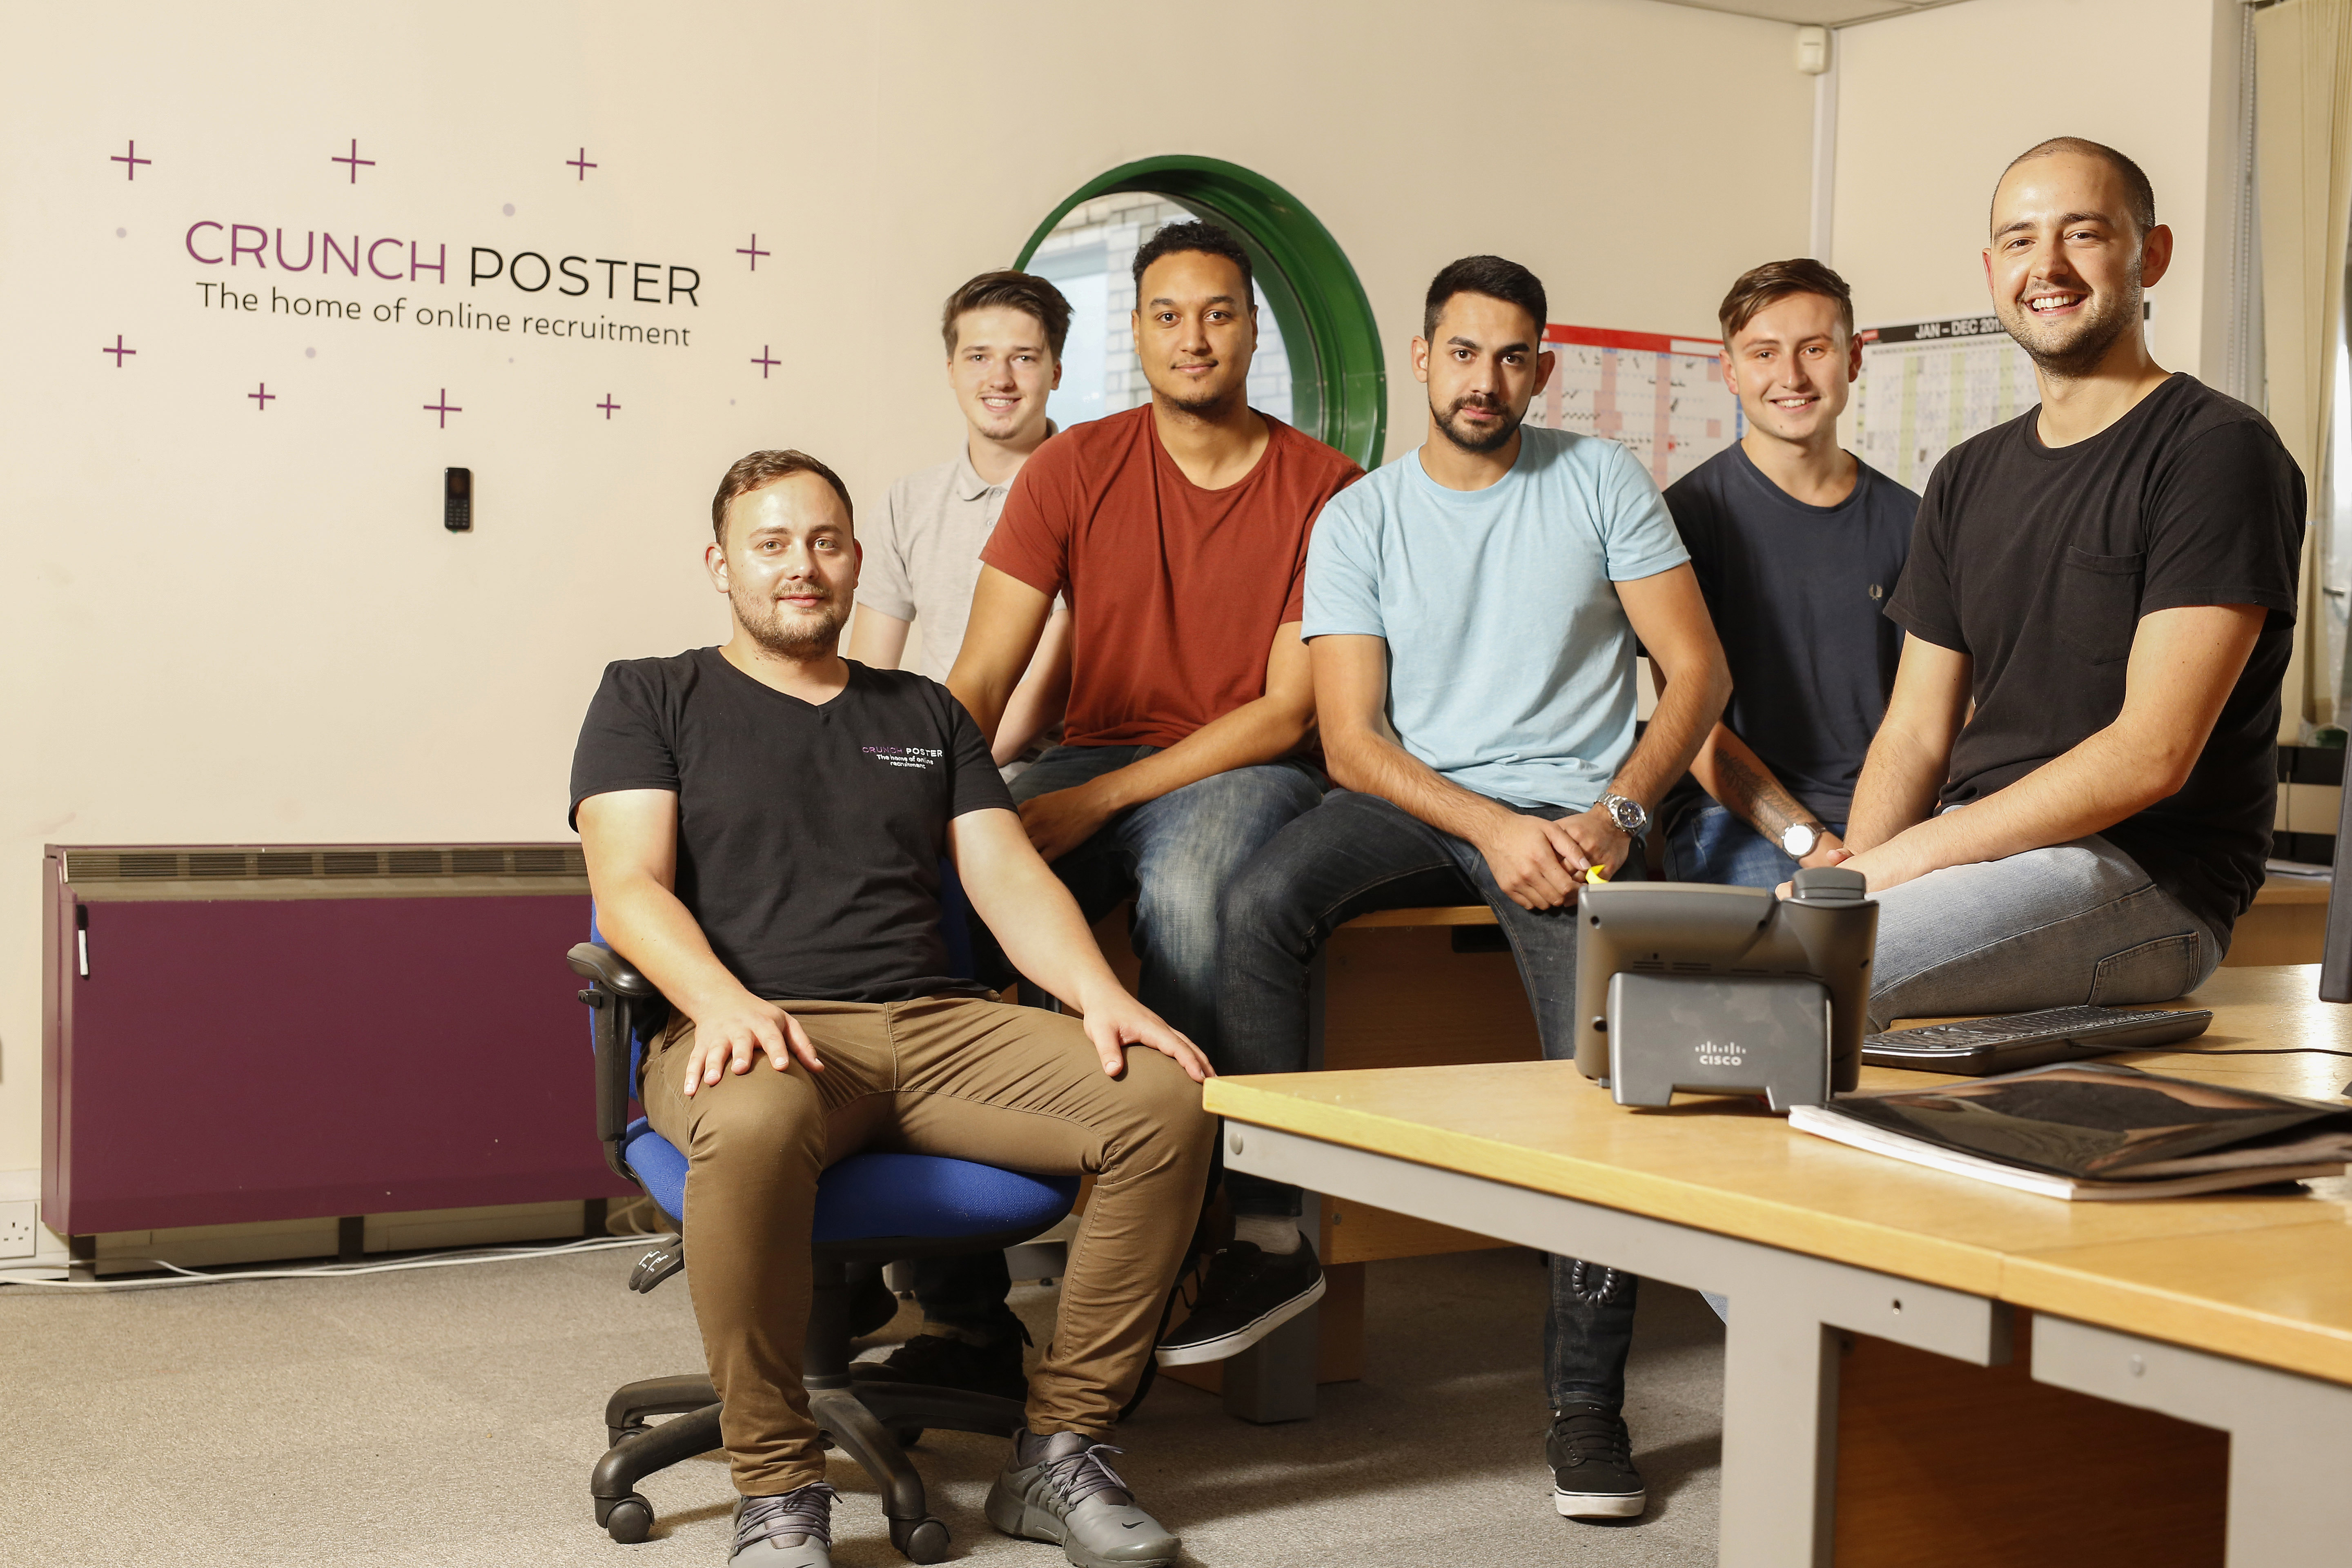 The Crunch Poster team in their offices